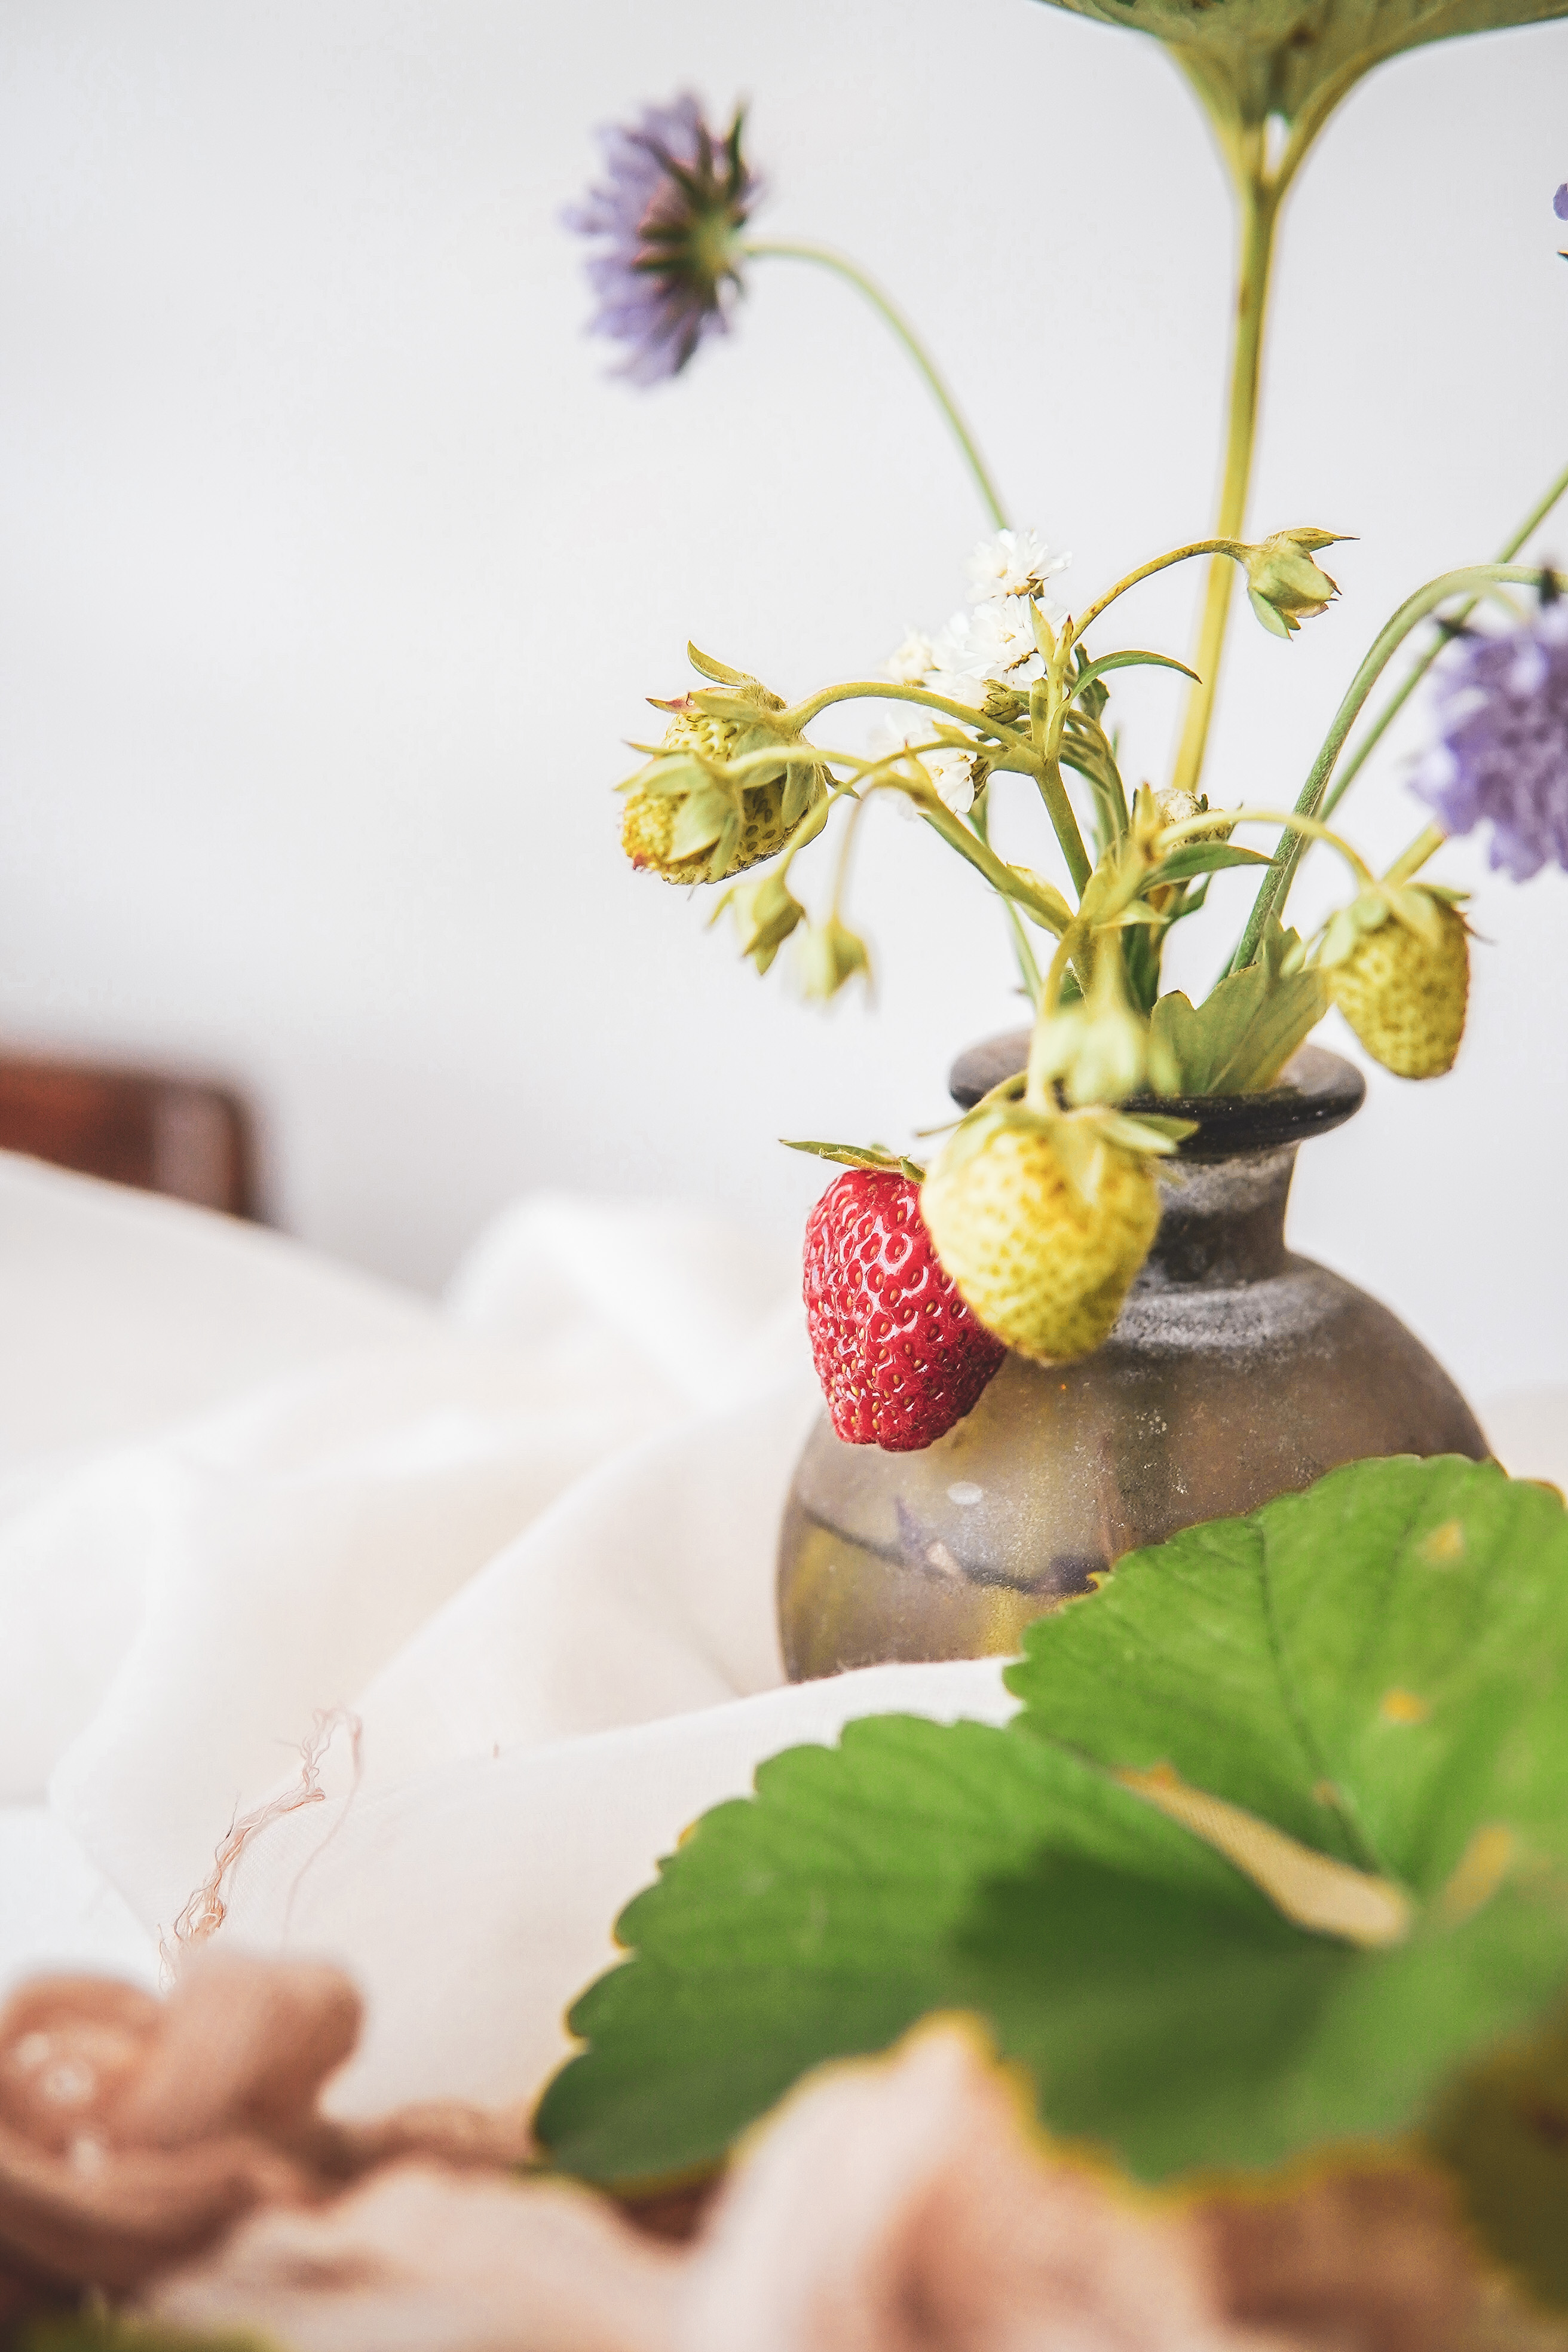 strawberries photography